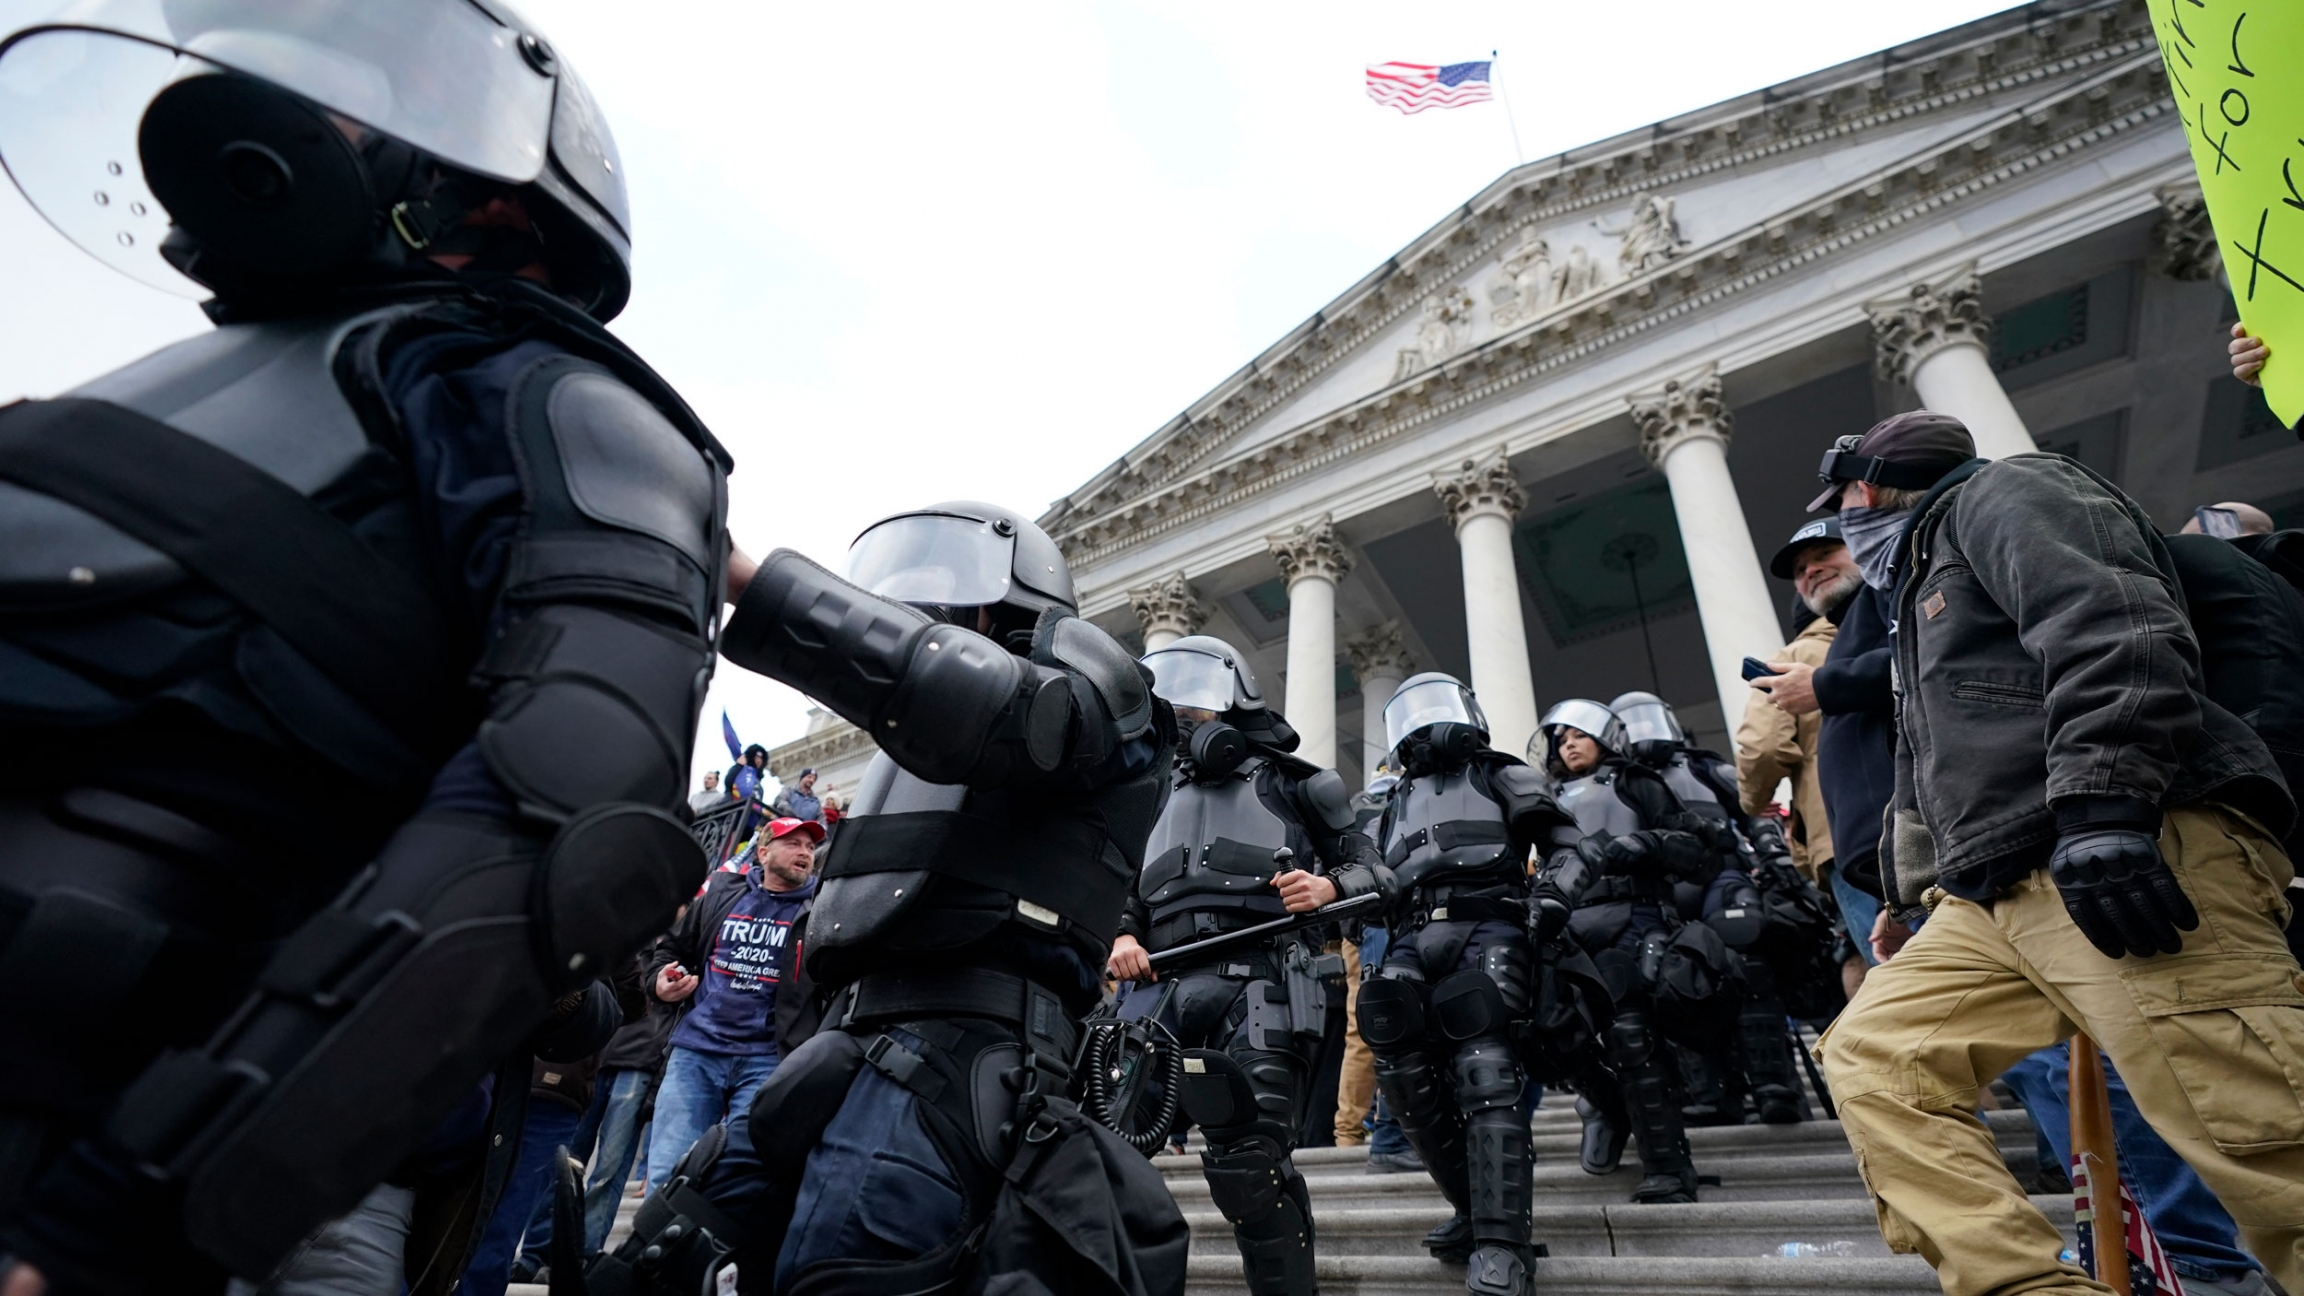 A line of police are shown walking down the Capitol building staircase dressed in black armor with helmets.